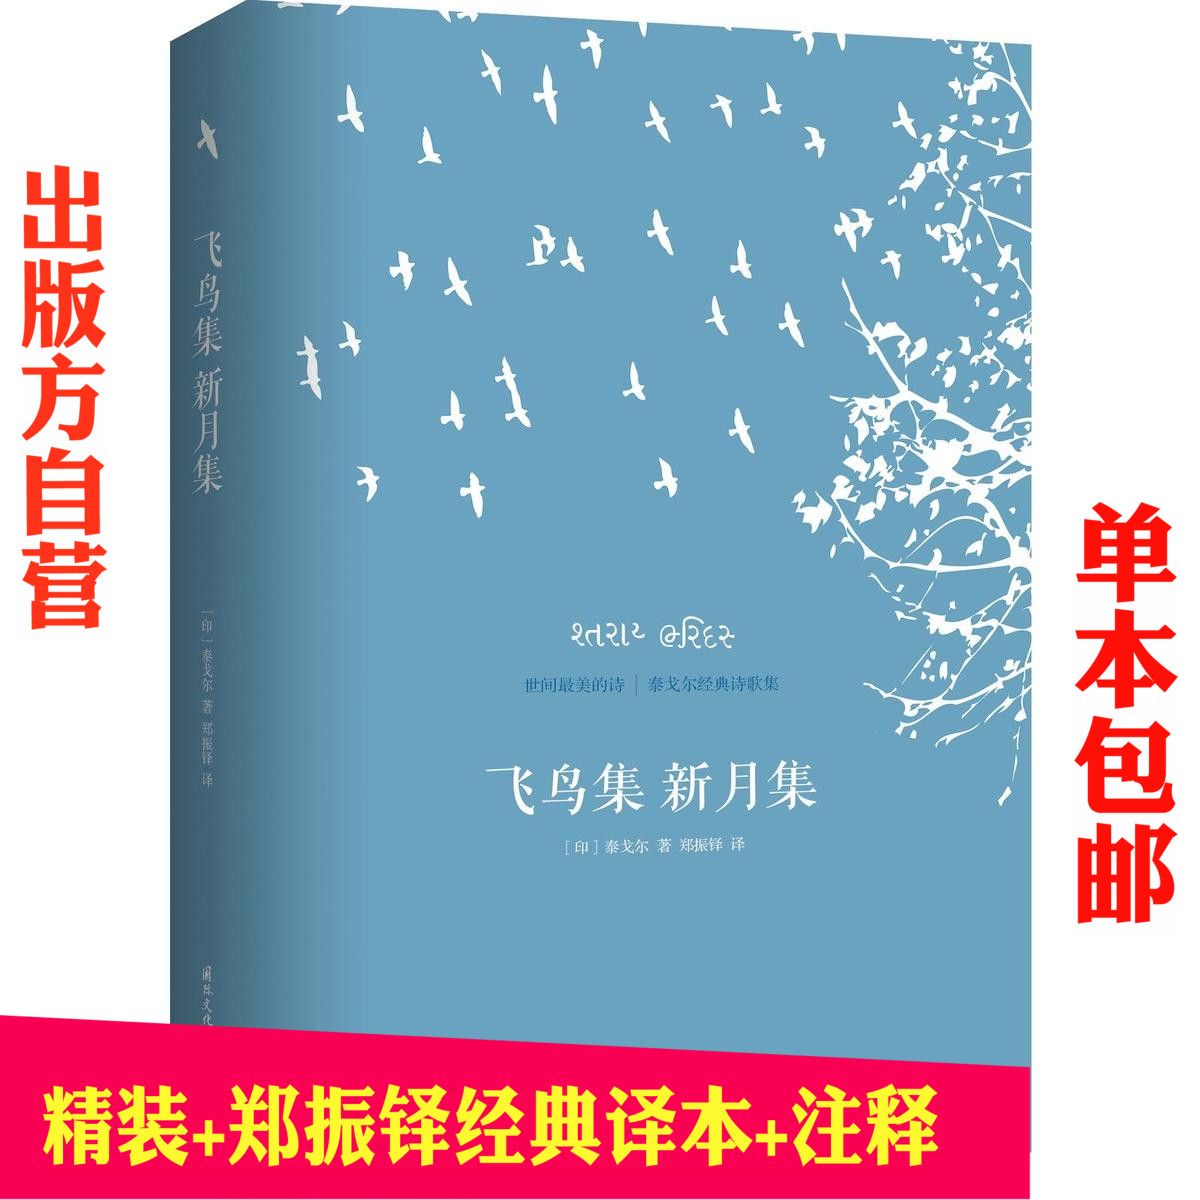 Genuine bird collection new moon collection hardcover collection Asian Nobel Prize winner Indian poet Tagores gift to the world Xu Zhimo preface Zheng Zhenduo classic translation 432